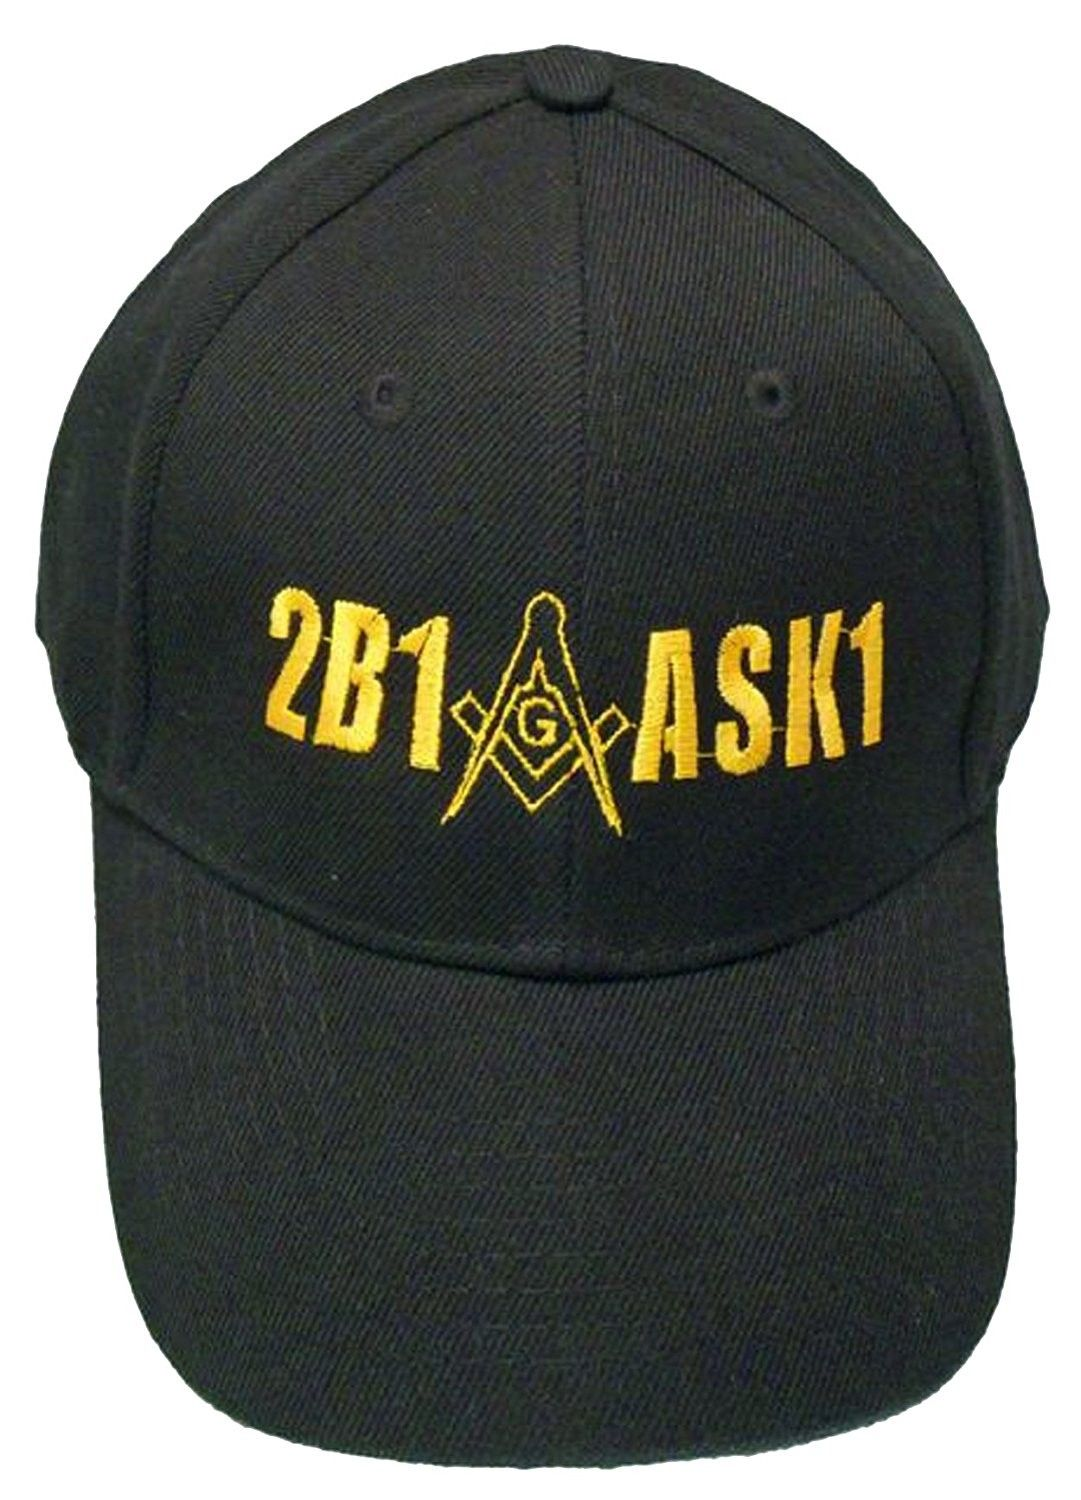 a9bffeb4fc5 2B1ASK1 Mason Baseball Cap 2B1 ASK1 Freemason Black Hat Mens - C611YGG3PR1  - Hats   Caps